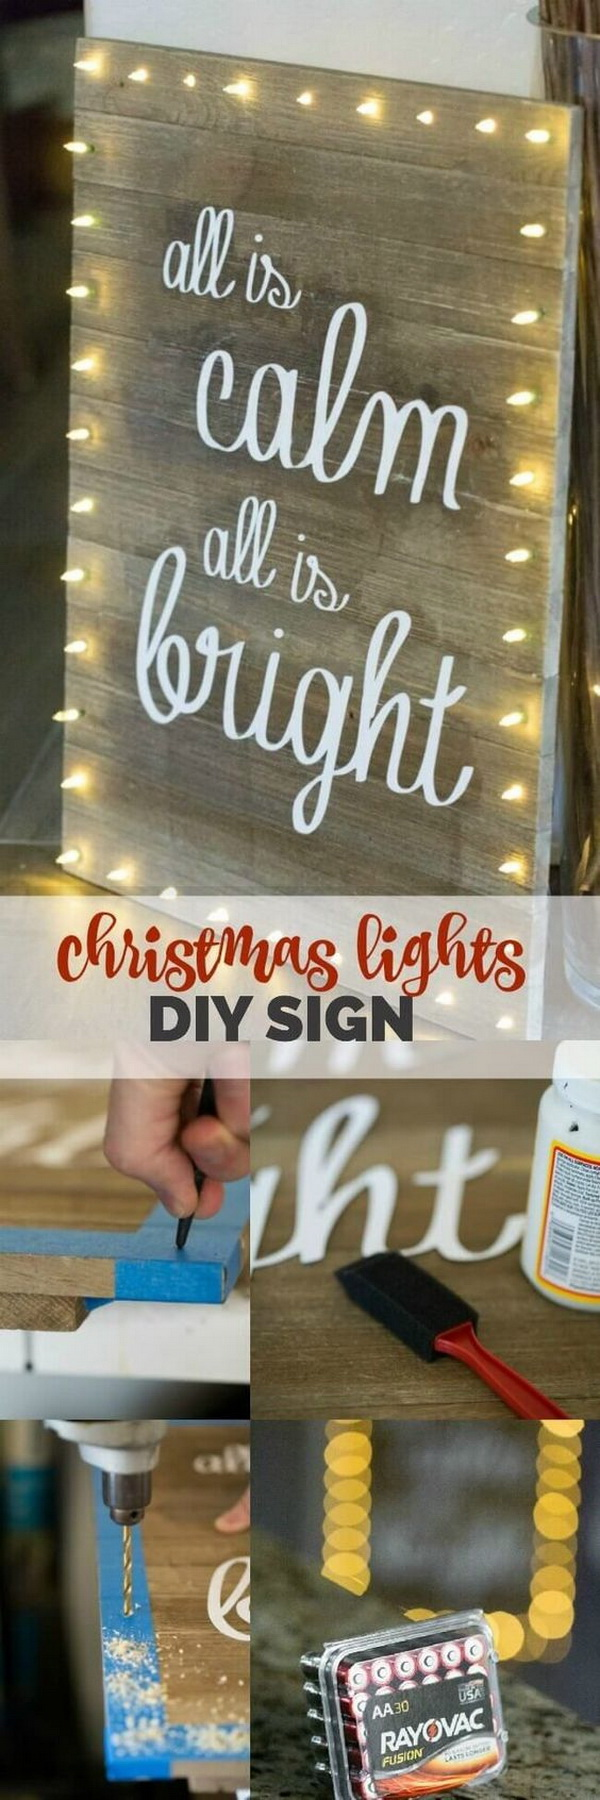 Christmas Lights DIY Board Sign. Great DIY project for your rustic Chriatmas decoration!